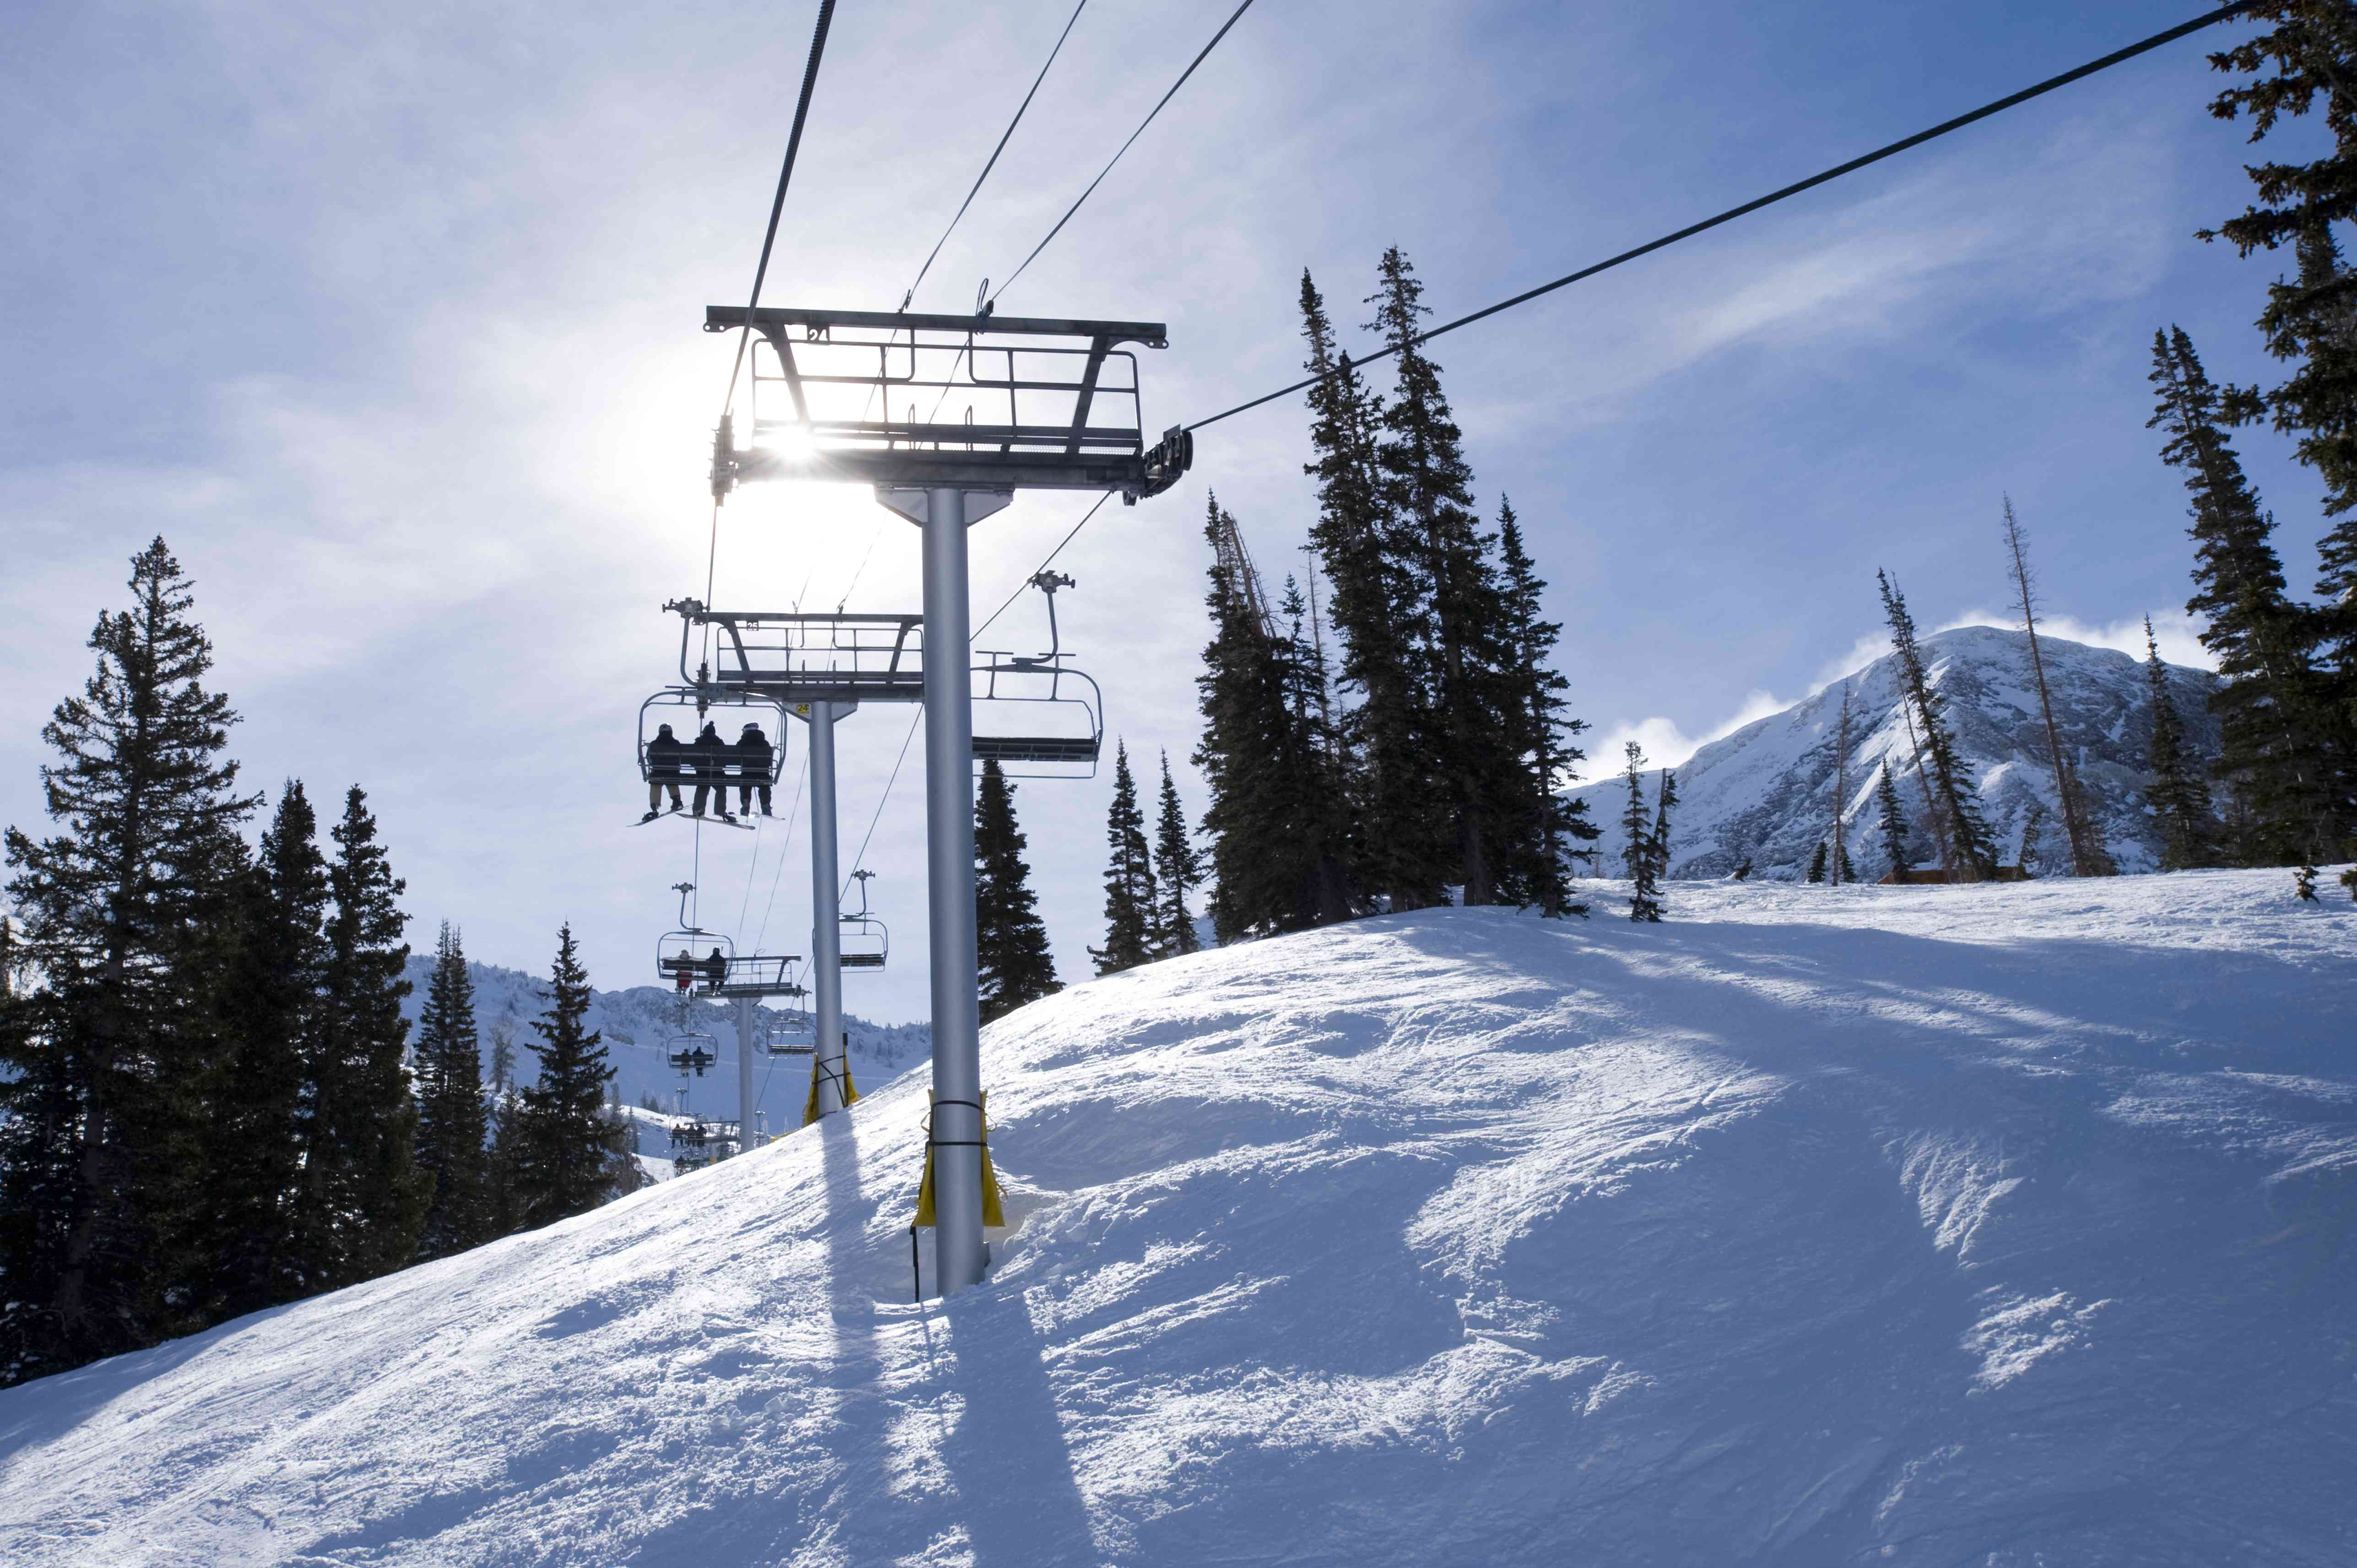 Quad chairlift in the winter in Utah.